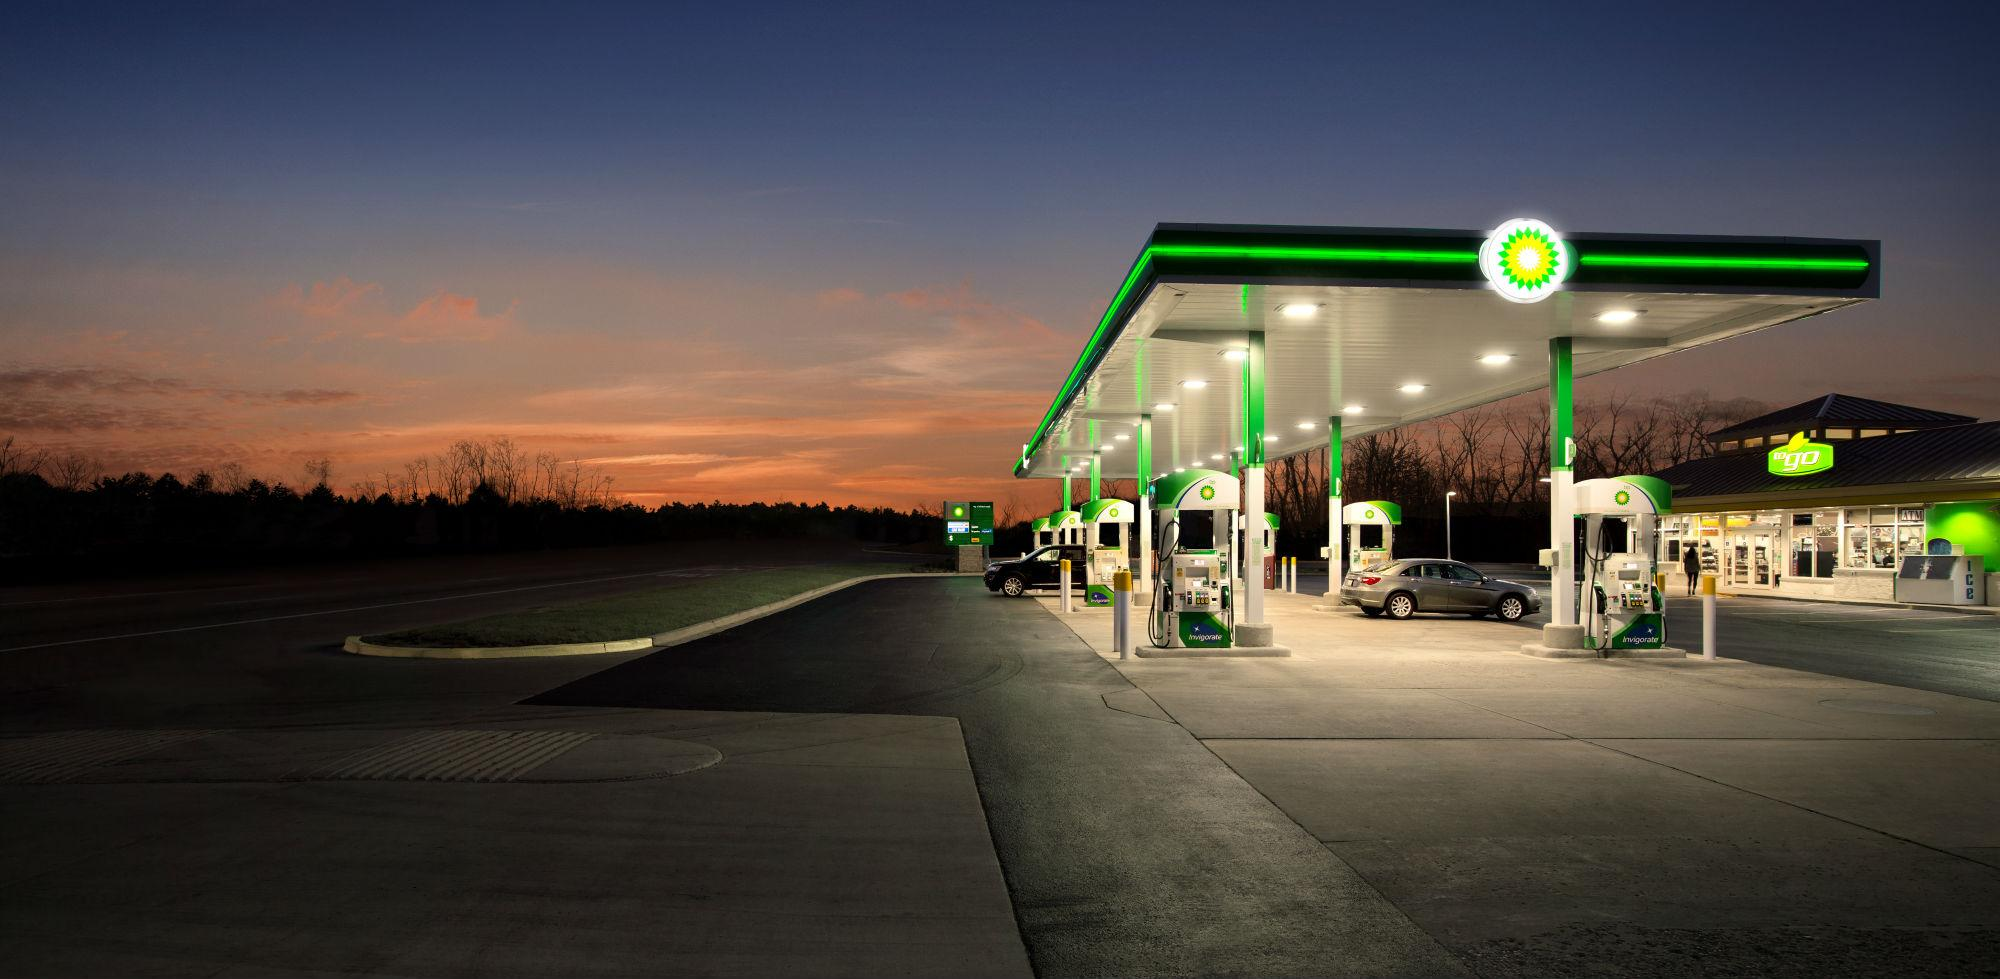 Bp Gas Prices >> How BP Views The Oil Market And Why It Matters - BP p.l.c